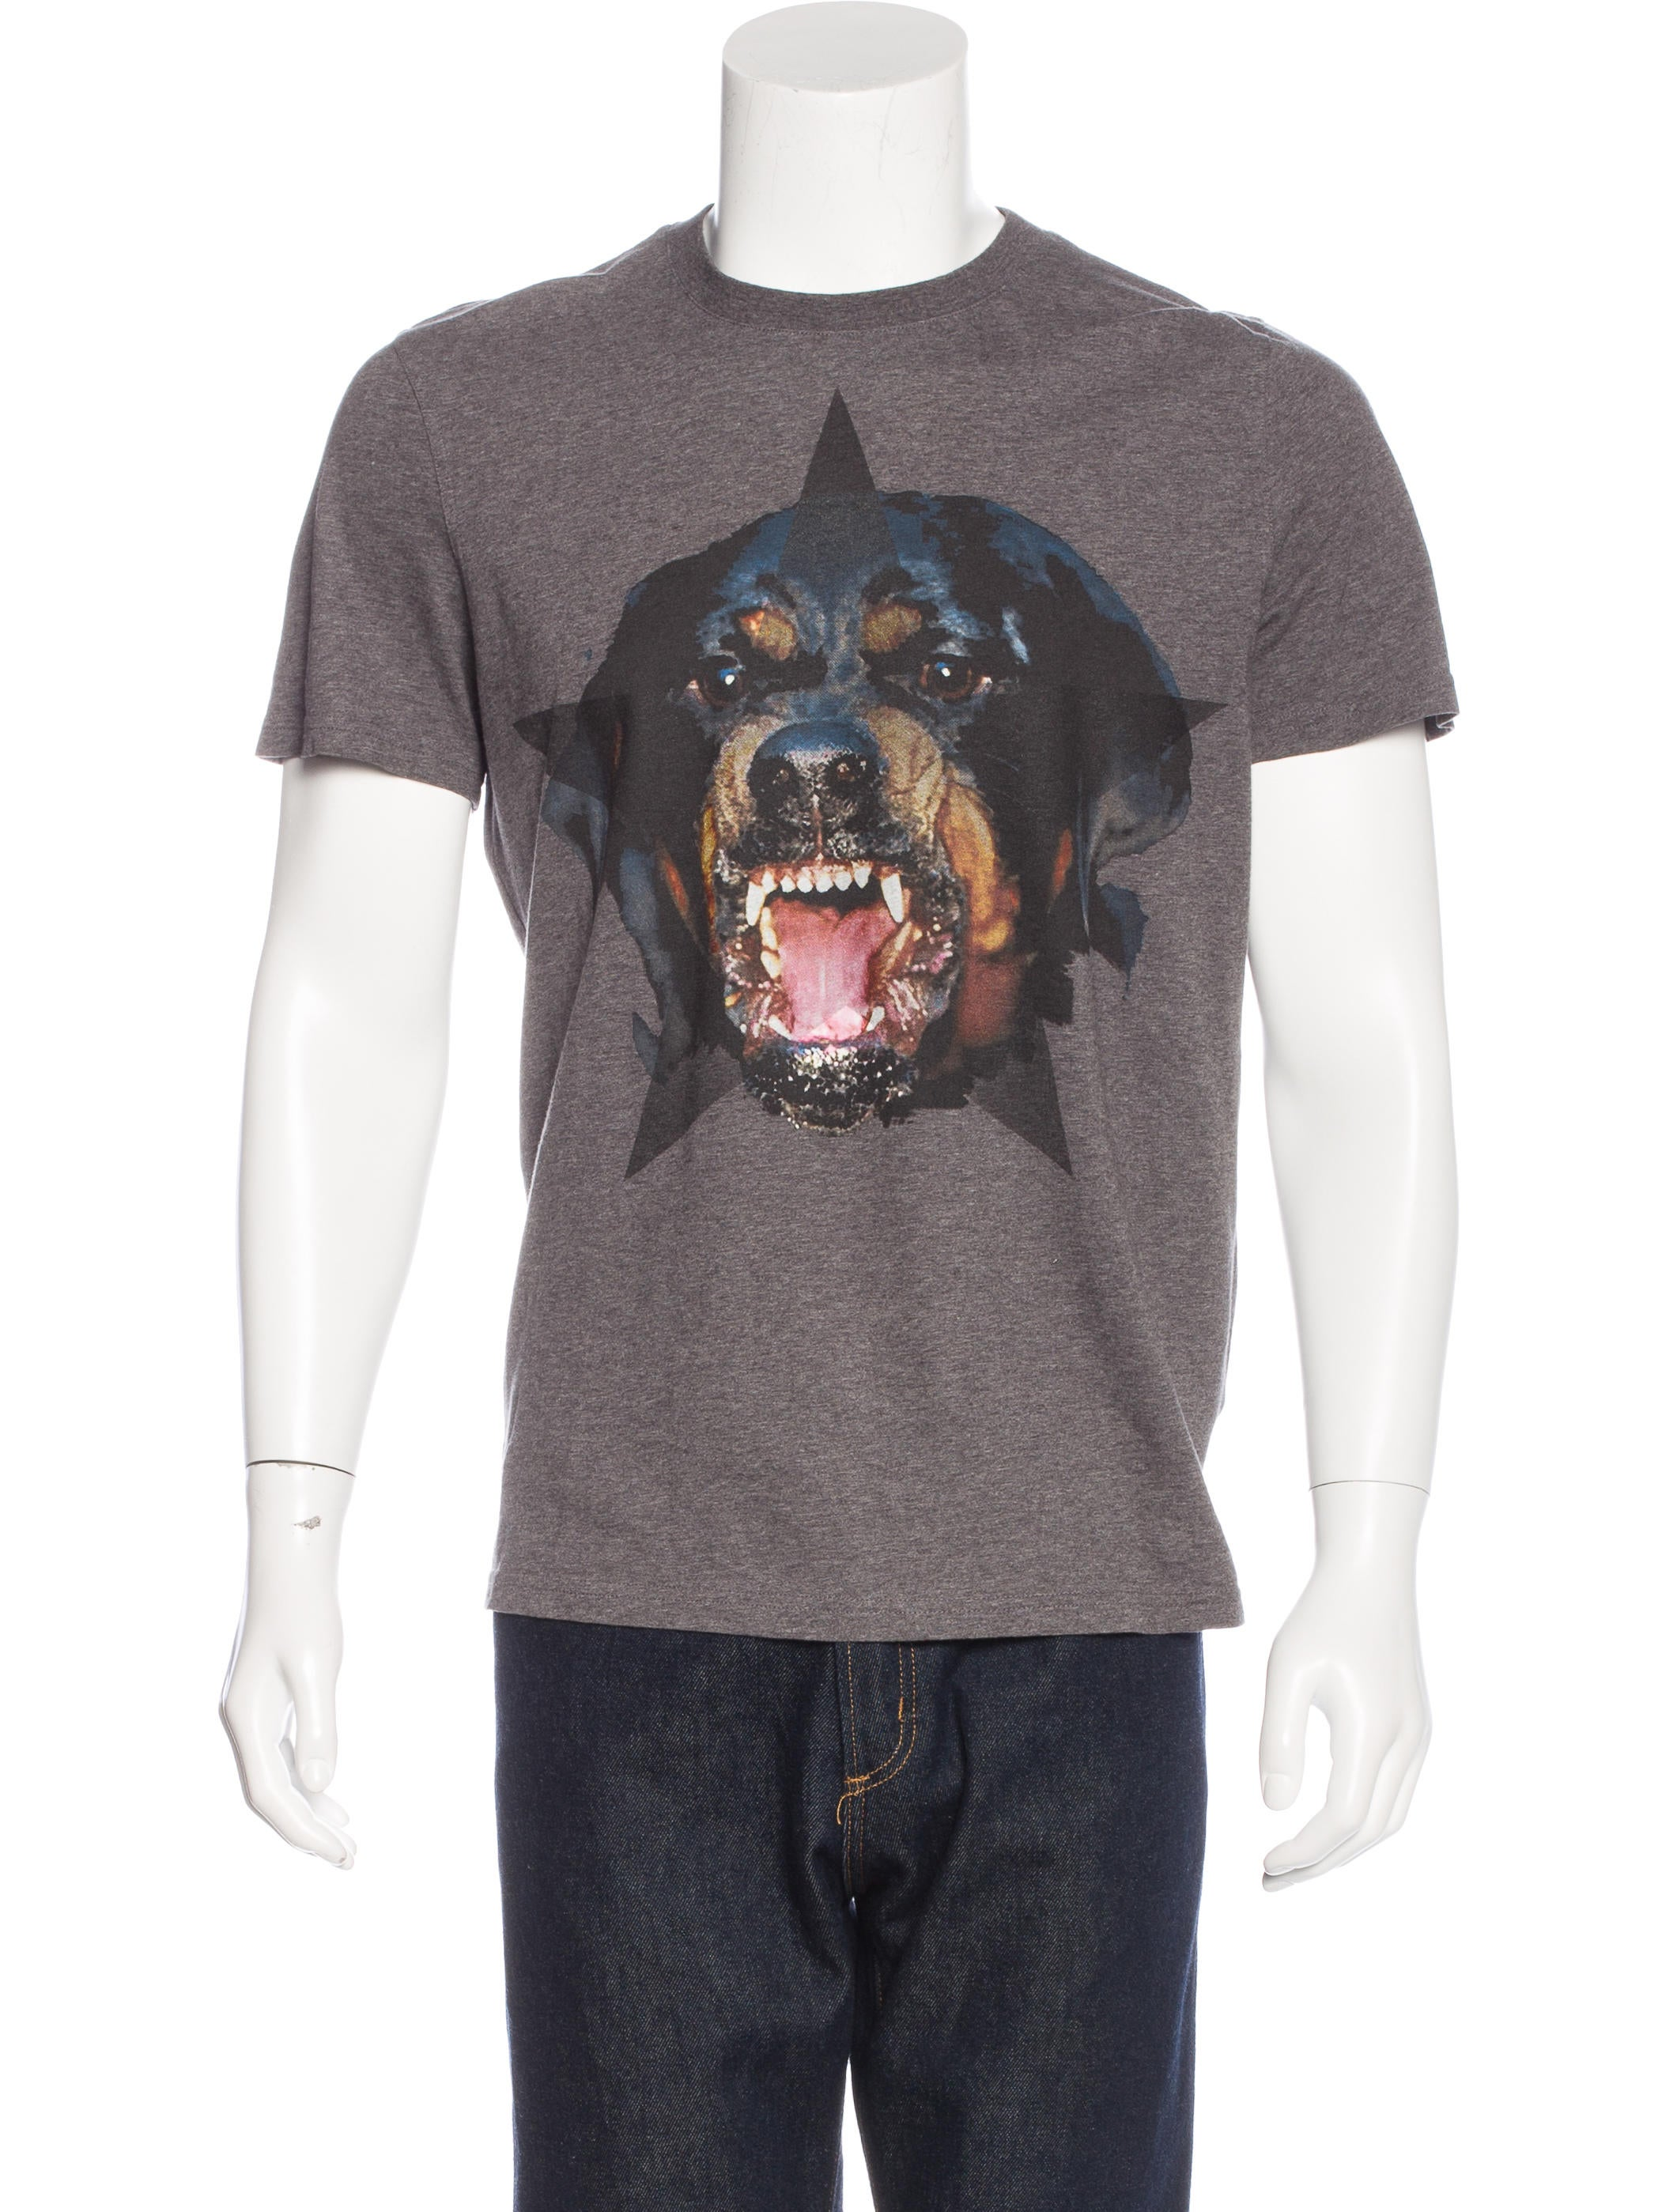 Givenchy cuban fit rottweiler t shirt clothing for Givenchy t shirts for sale